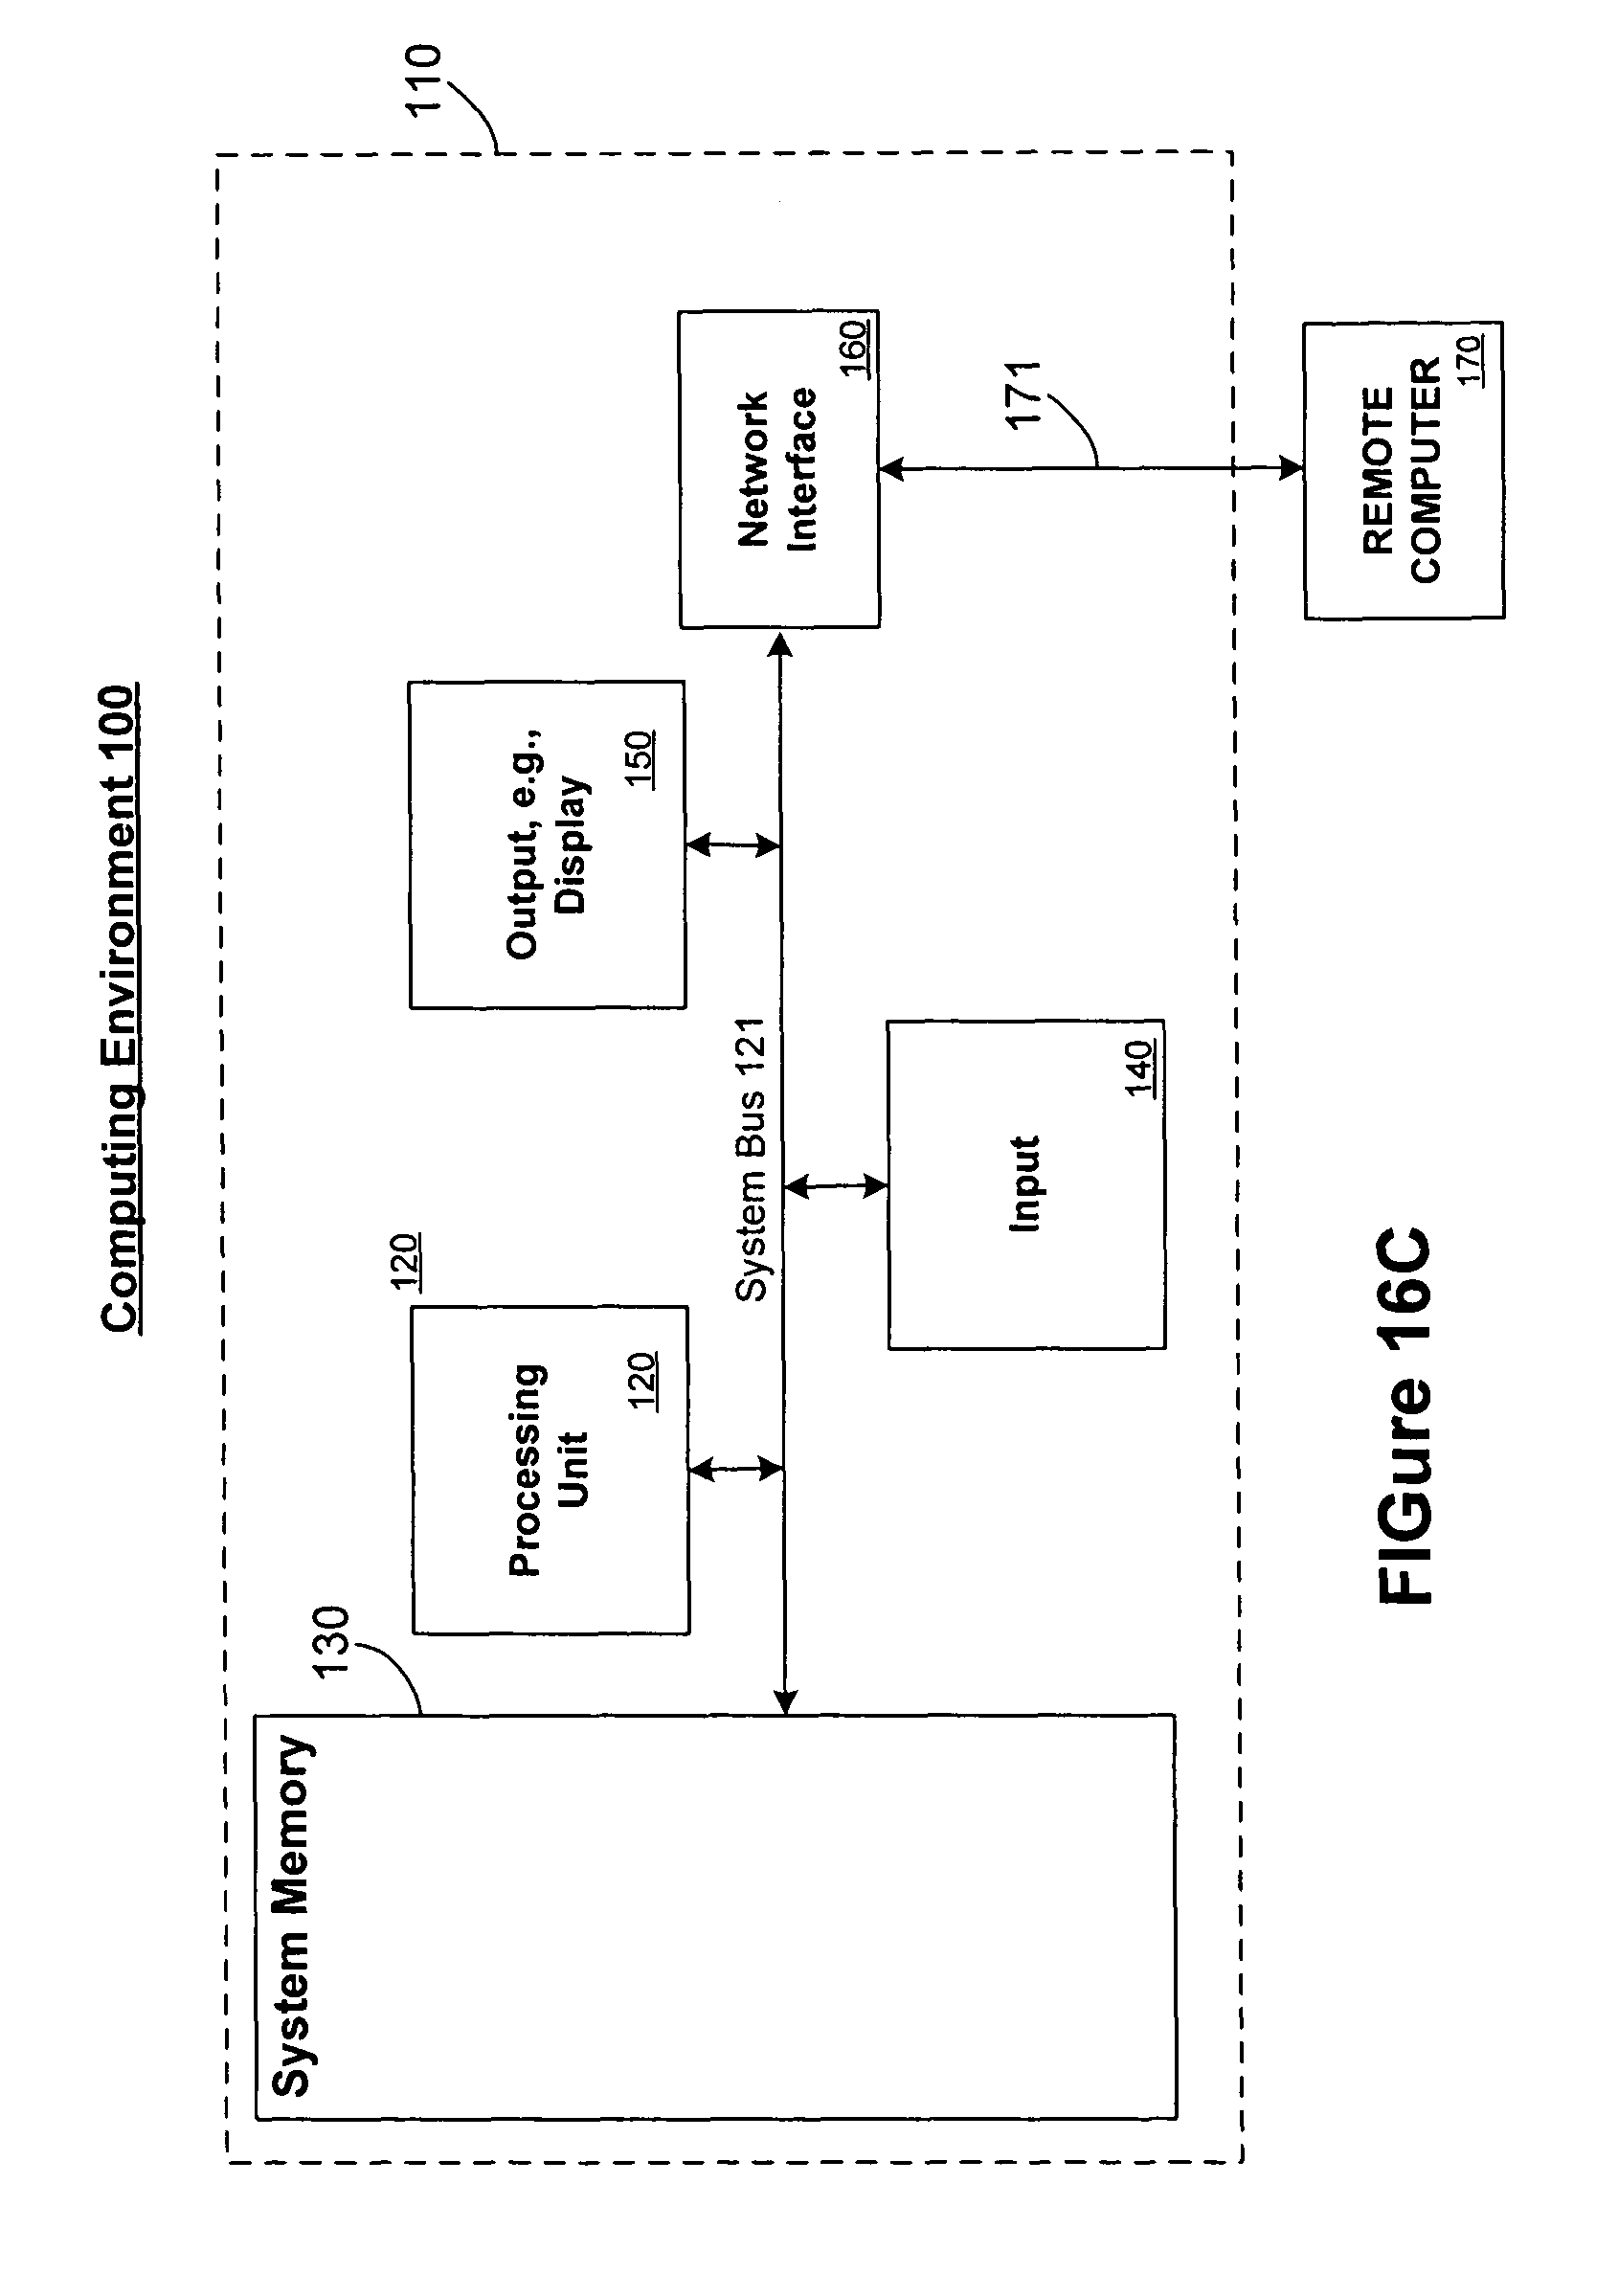 Patent Us7882146 Xml Schema Collection Objects And Corresponding Sakar Optical Usb Mouse Wiring Diagram Drawing